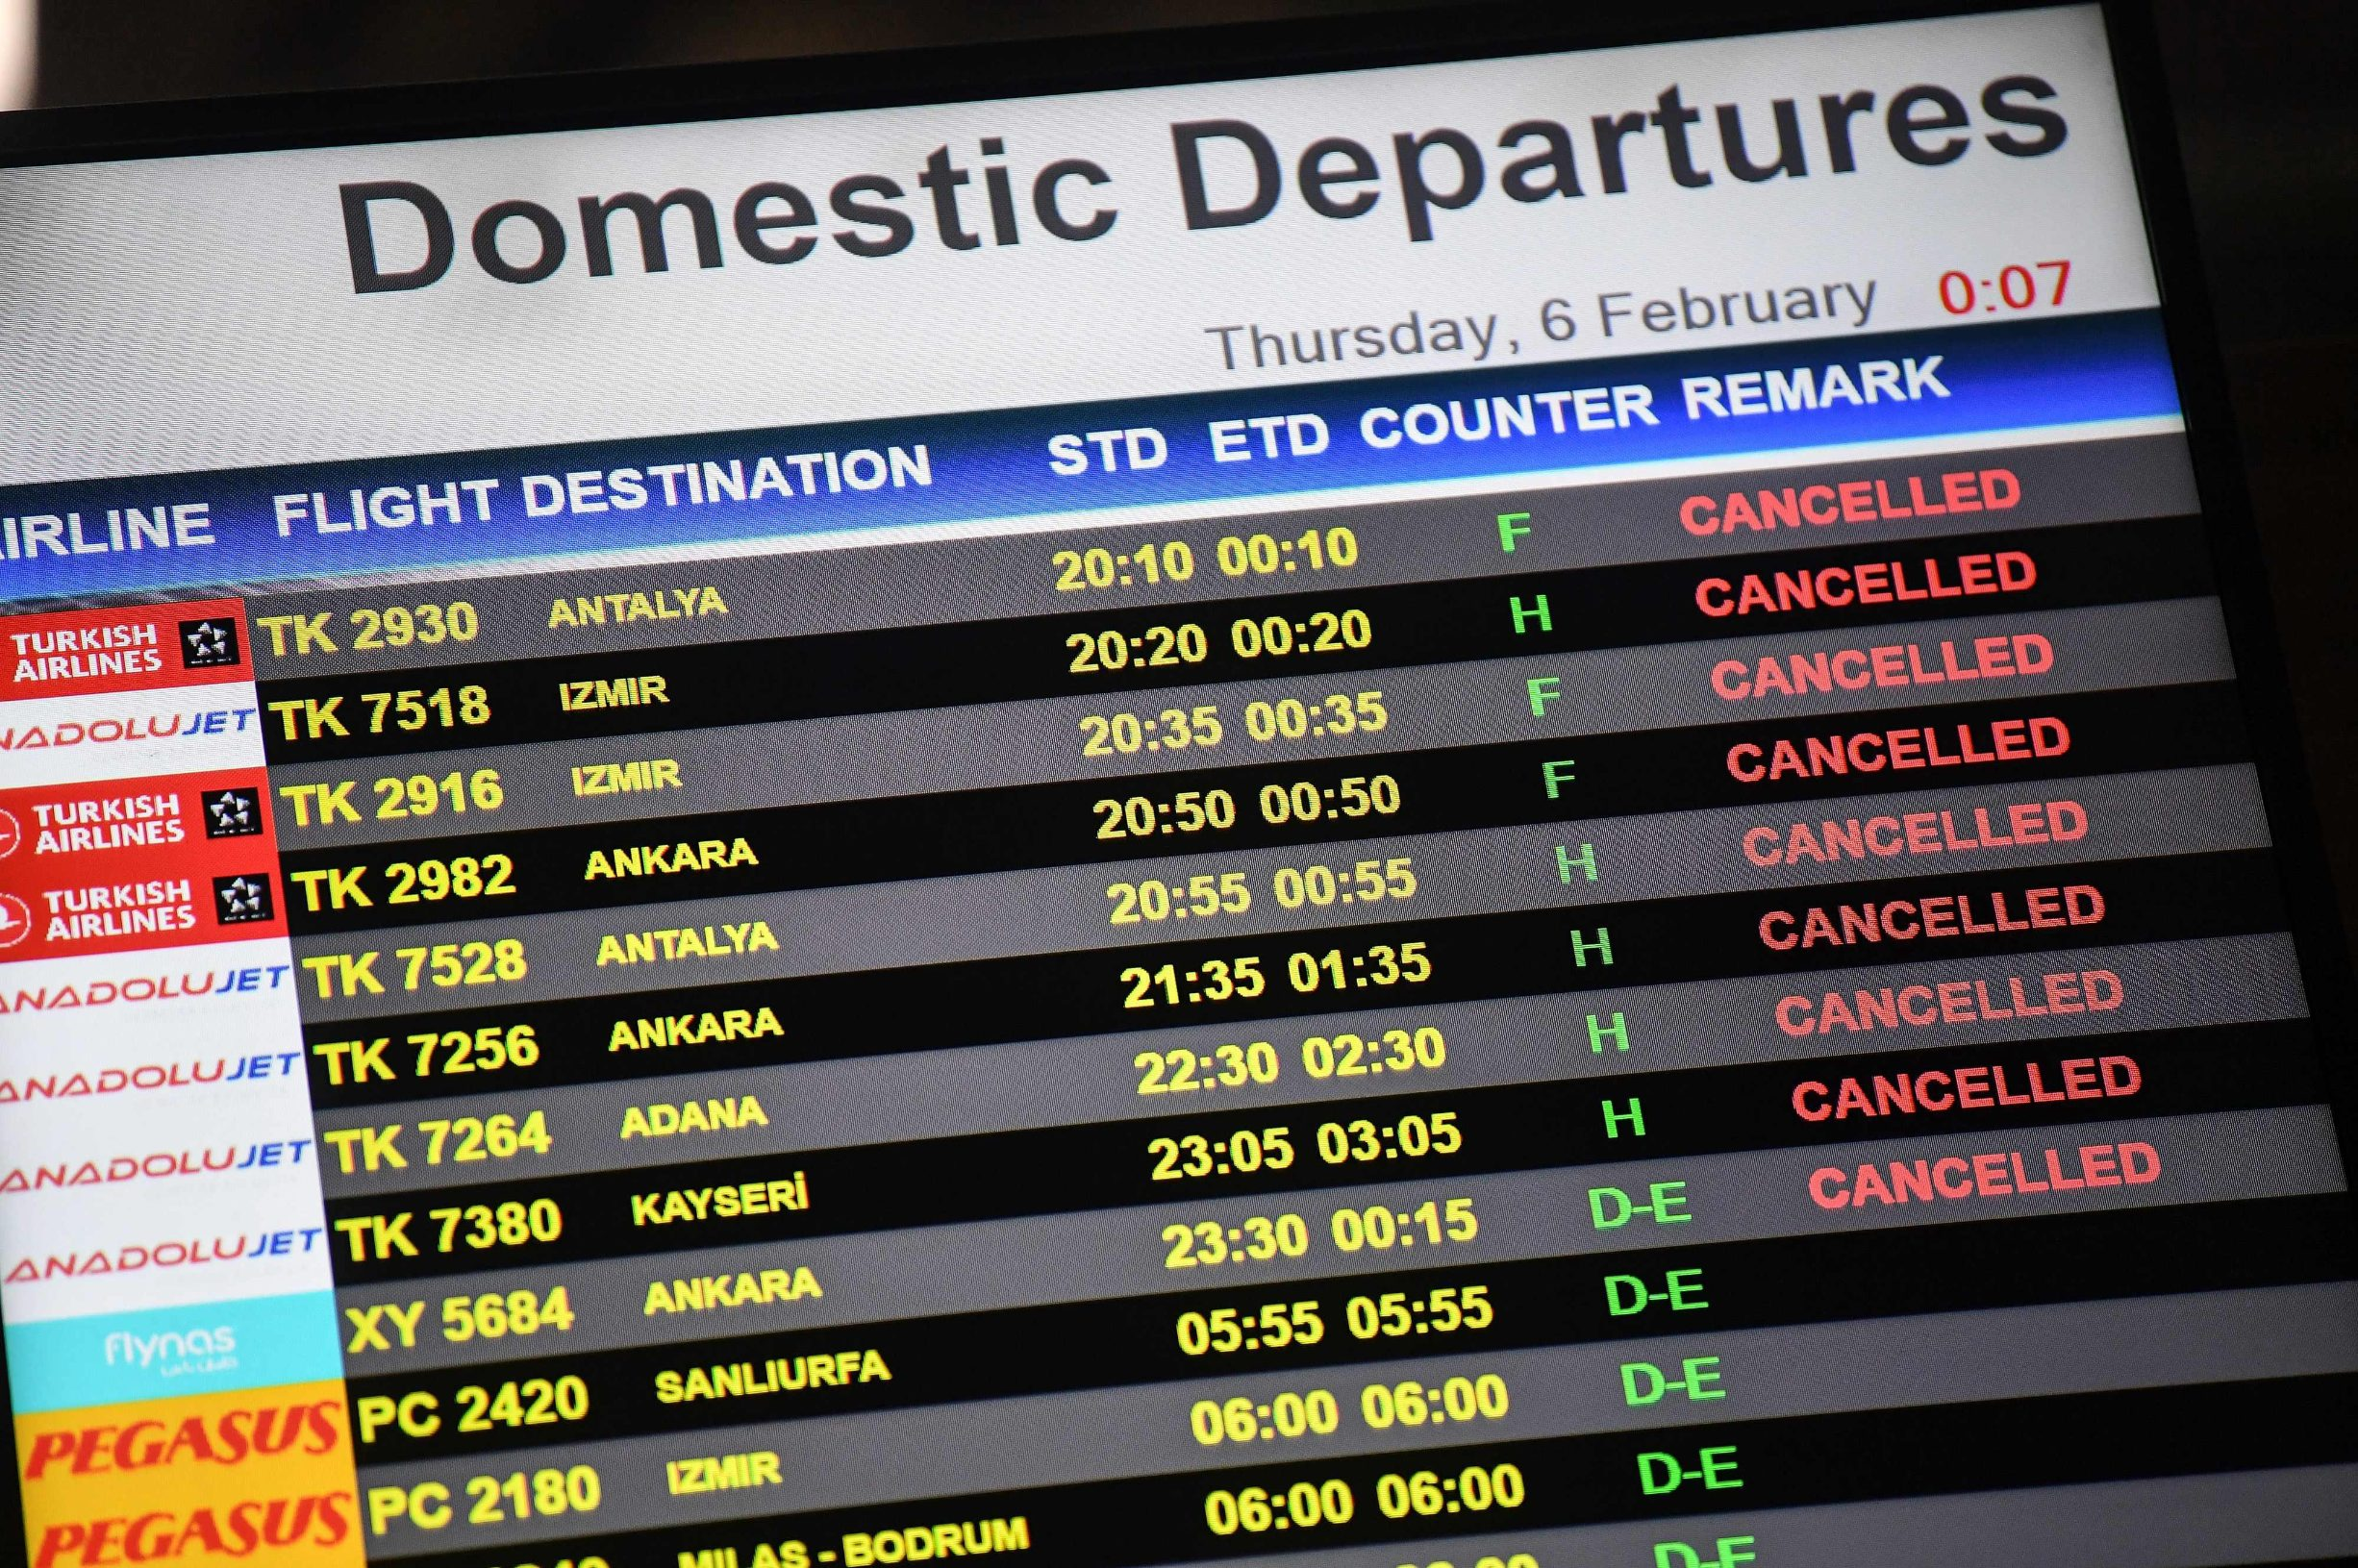 A digital display shows cancelled flights at Sabiha Gokcen International airport after a Pegasus Airlines Boeing 737 airplane skidded off the runway upon landing at Sabiha Gokcen airport in Istanbul on February 5, 2020. - One person died and 157 were injured when a plane carrying 177 people skidded off the runway at an Istanbul airport, caught fire and split into three after landing in rough weather on February 5. (Photo by Ozan KOSE / AFP)